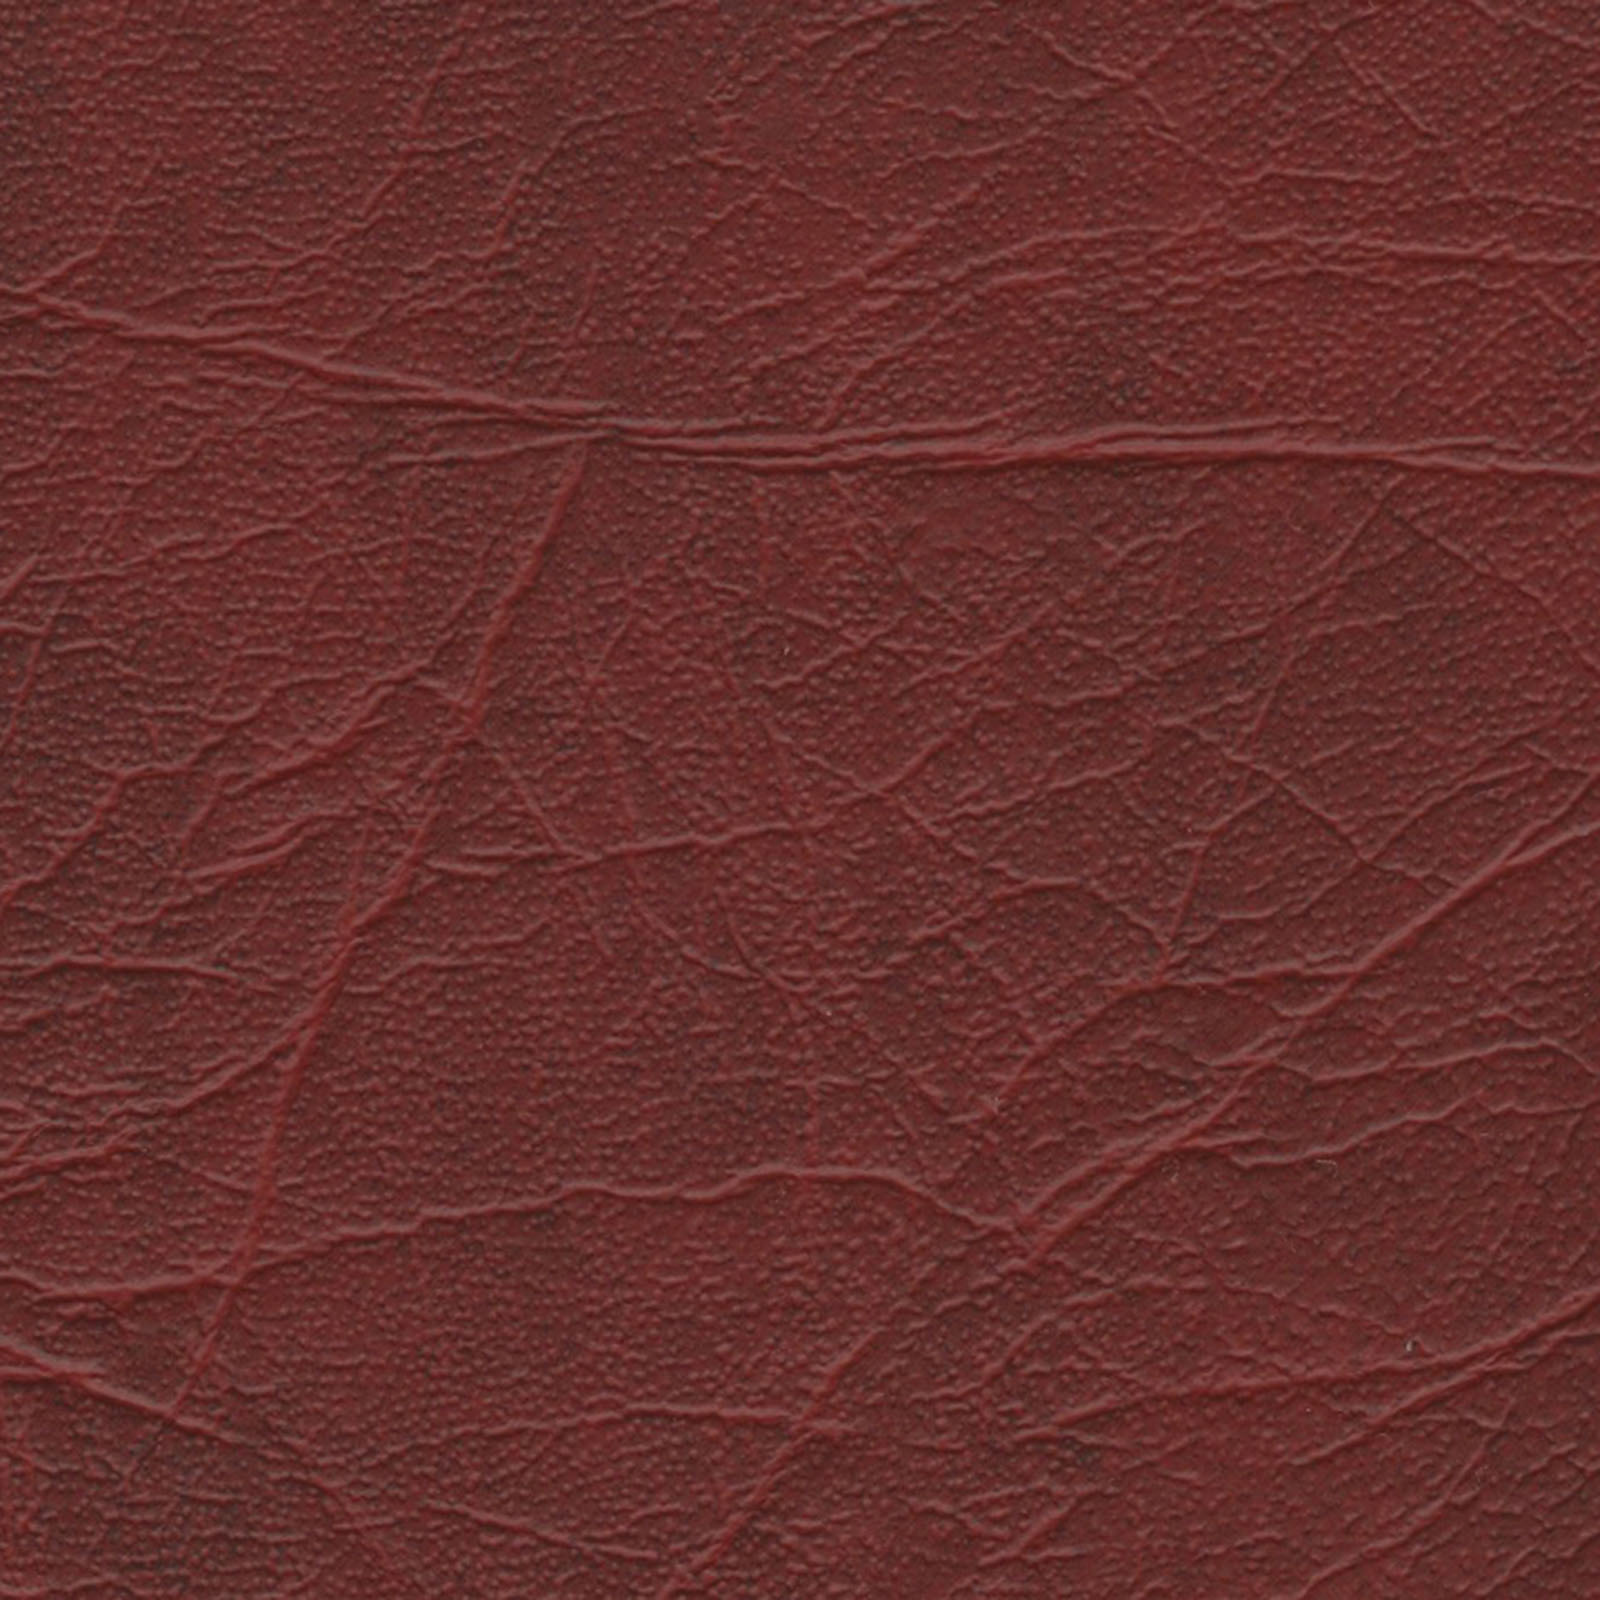 Oxen - OXS-9843 - Maroon